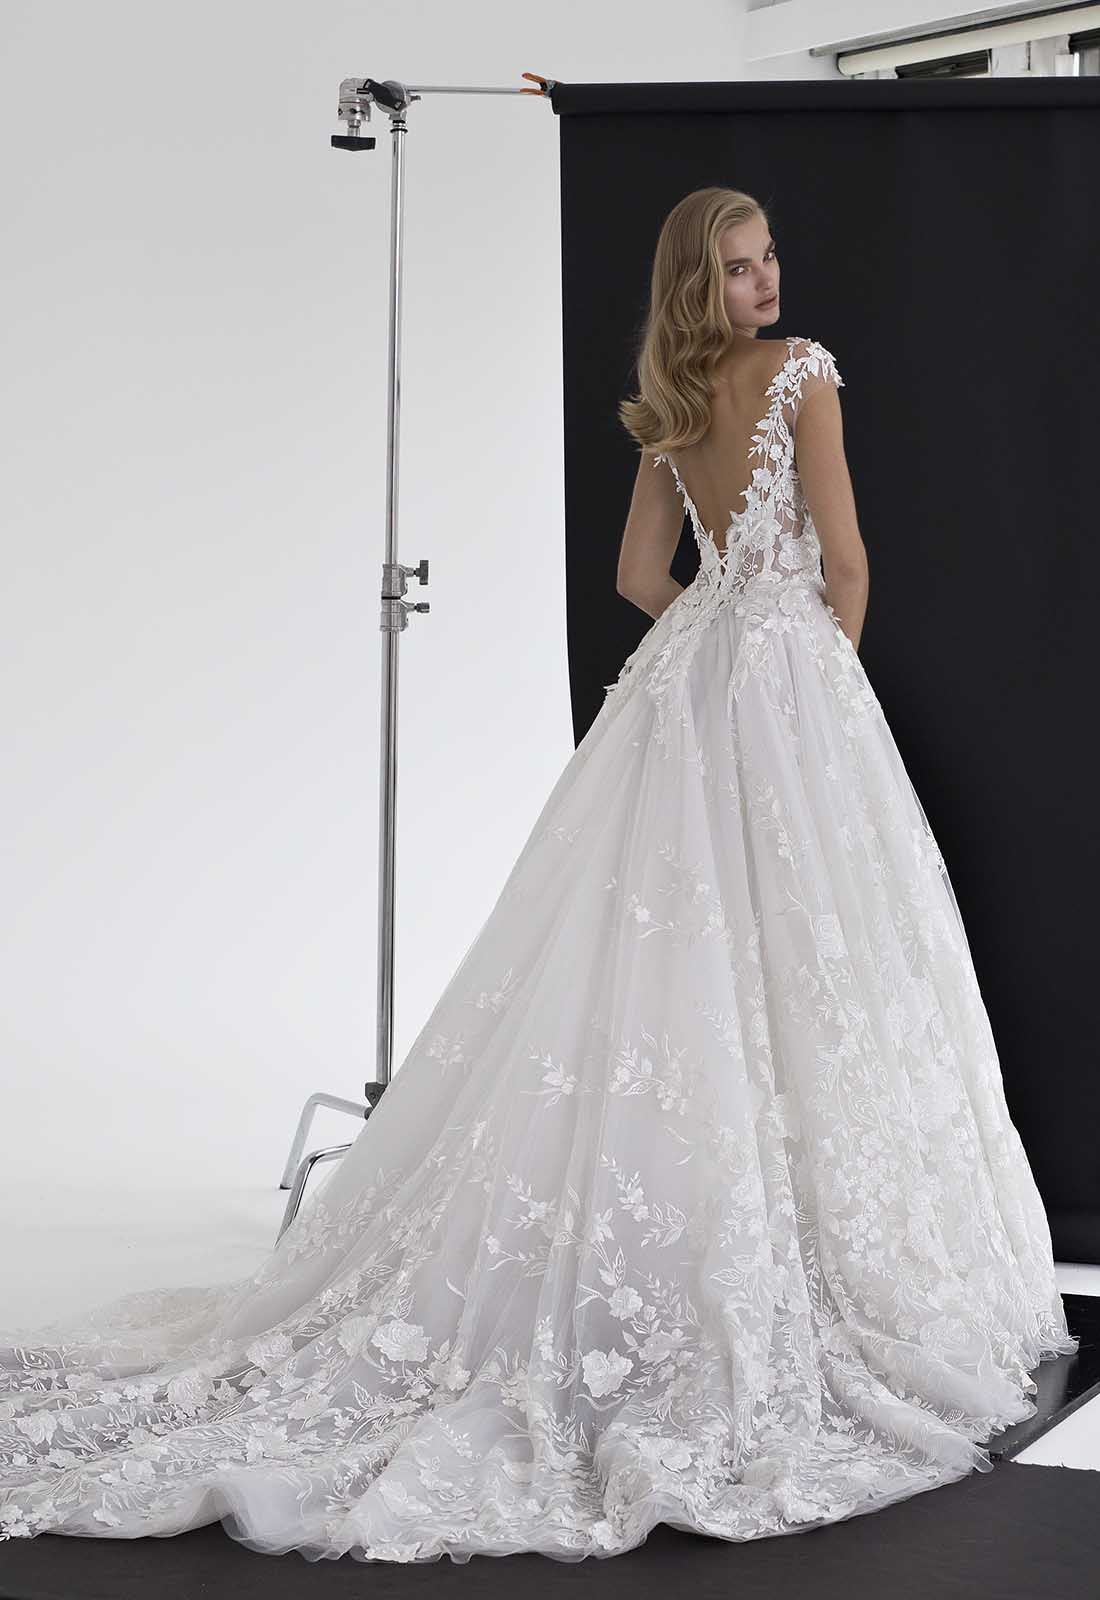 Floral Applique Tulle Ball Gown By Pnina Tornai Image 2 Zoomed In Ball Gown Wedding Dress Ball Gowns Wedding Ball Gowns